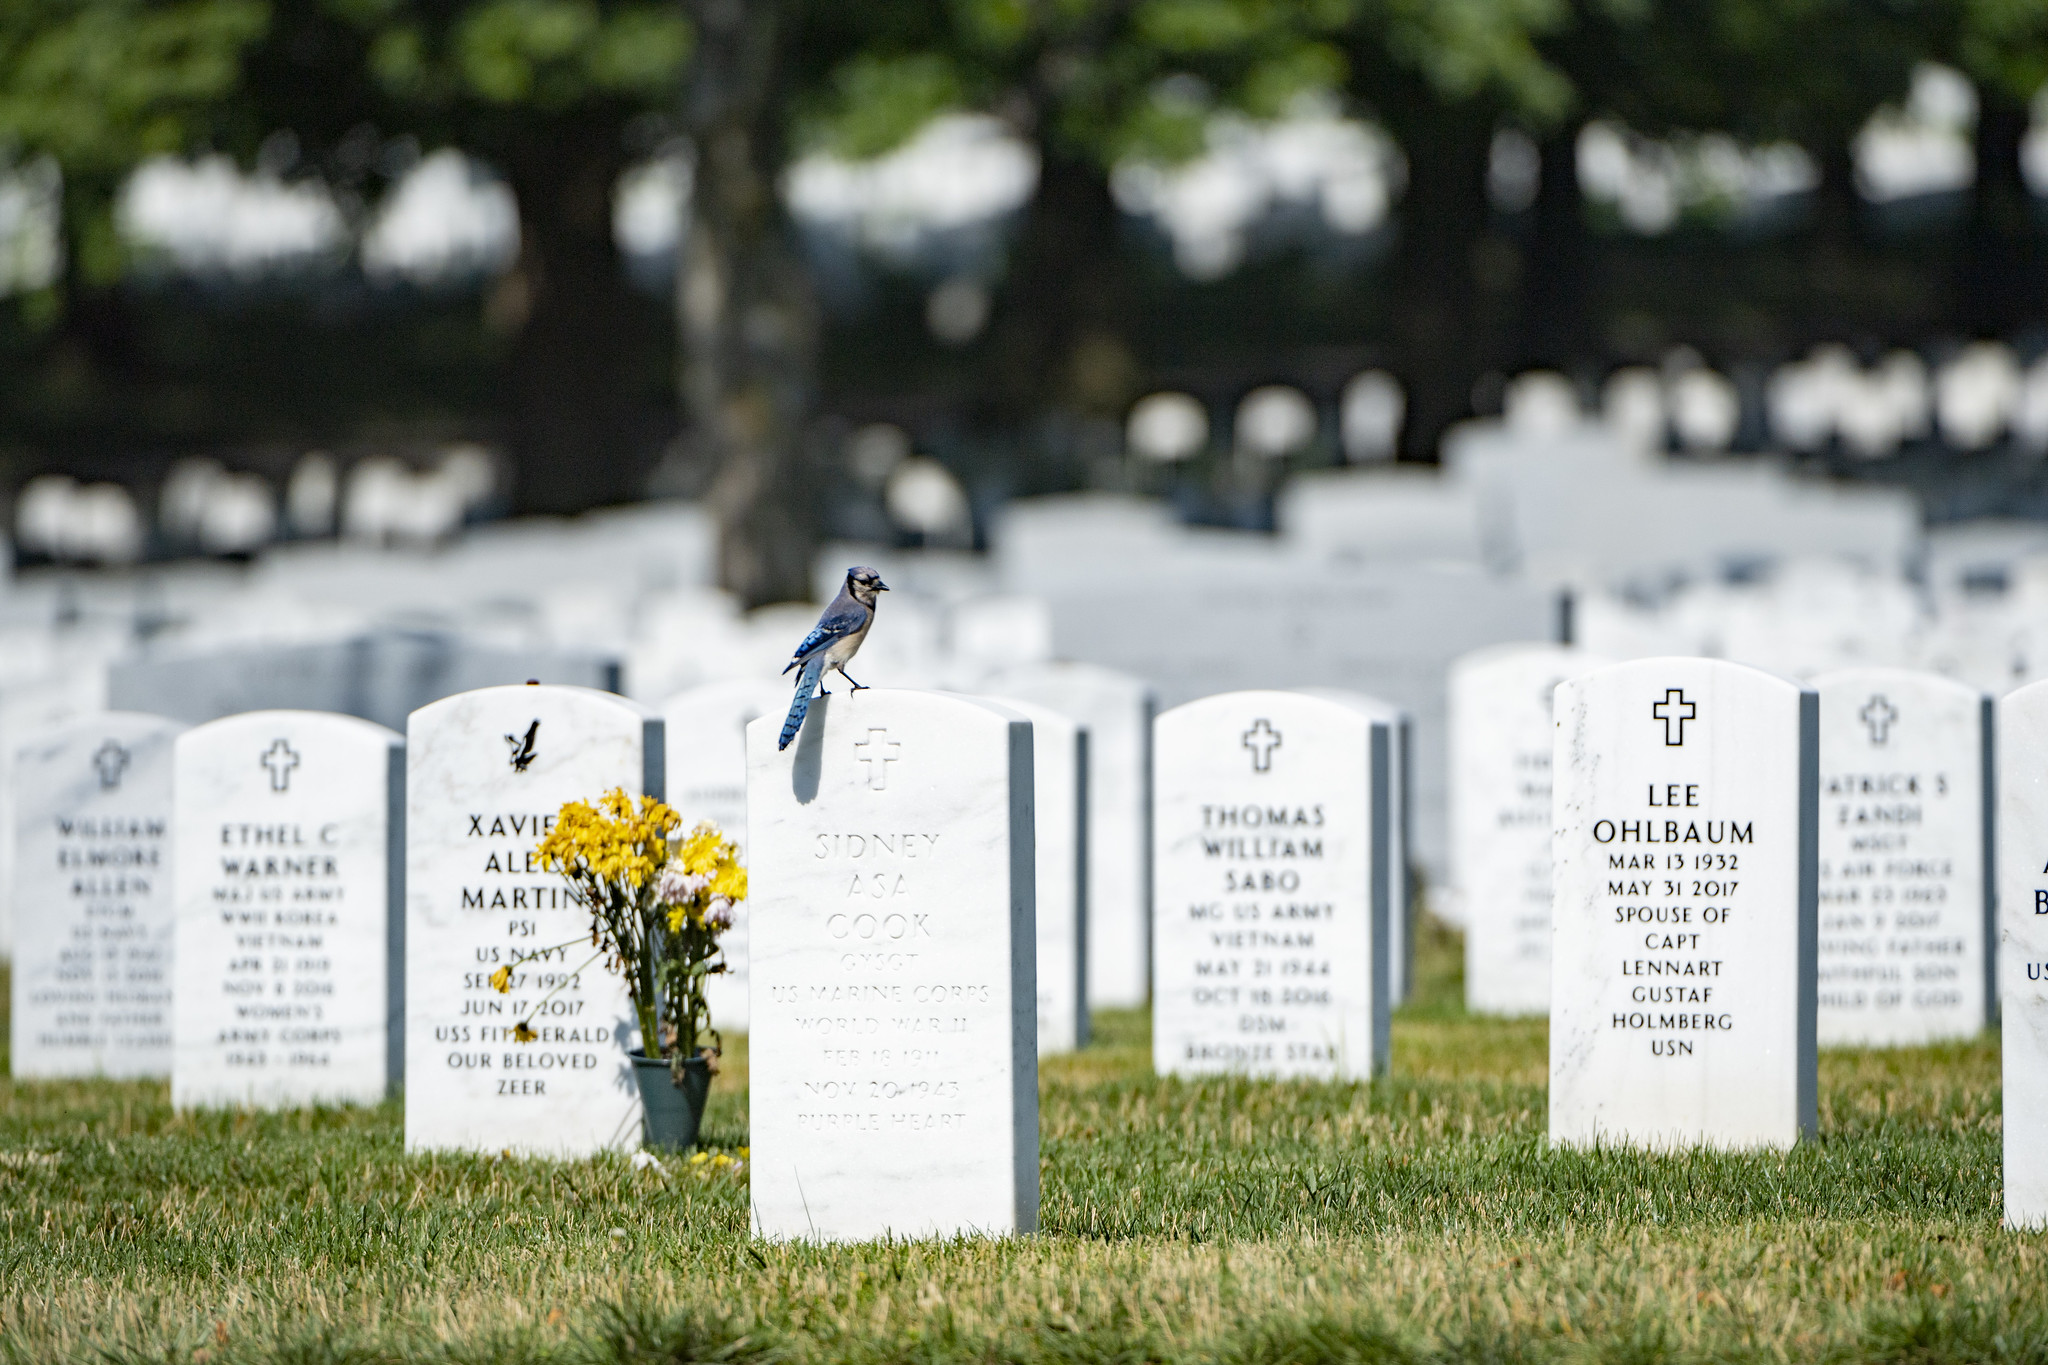 Bluejay sitting on headstone in section 60 of Arlington National Cemetery